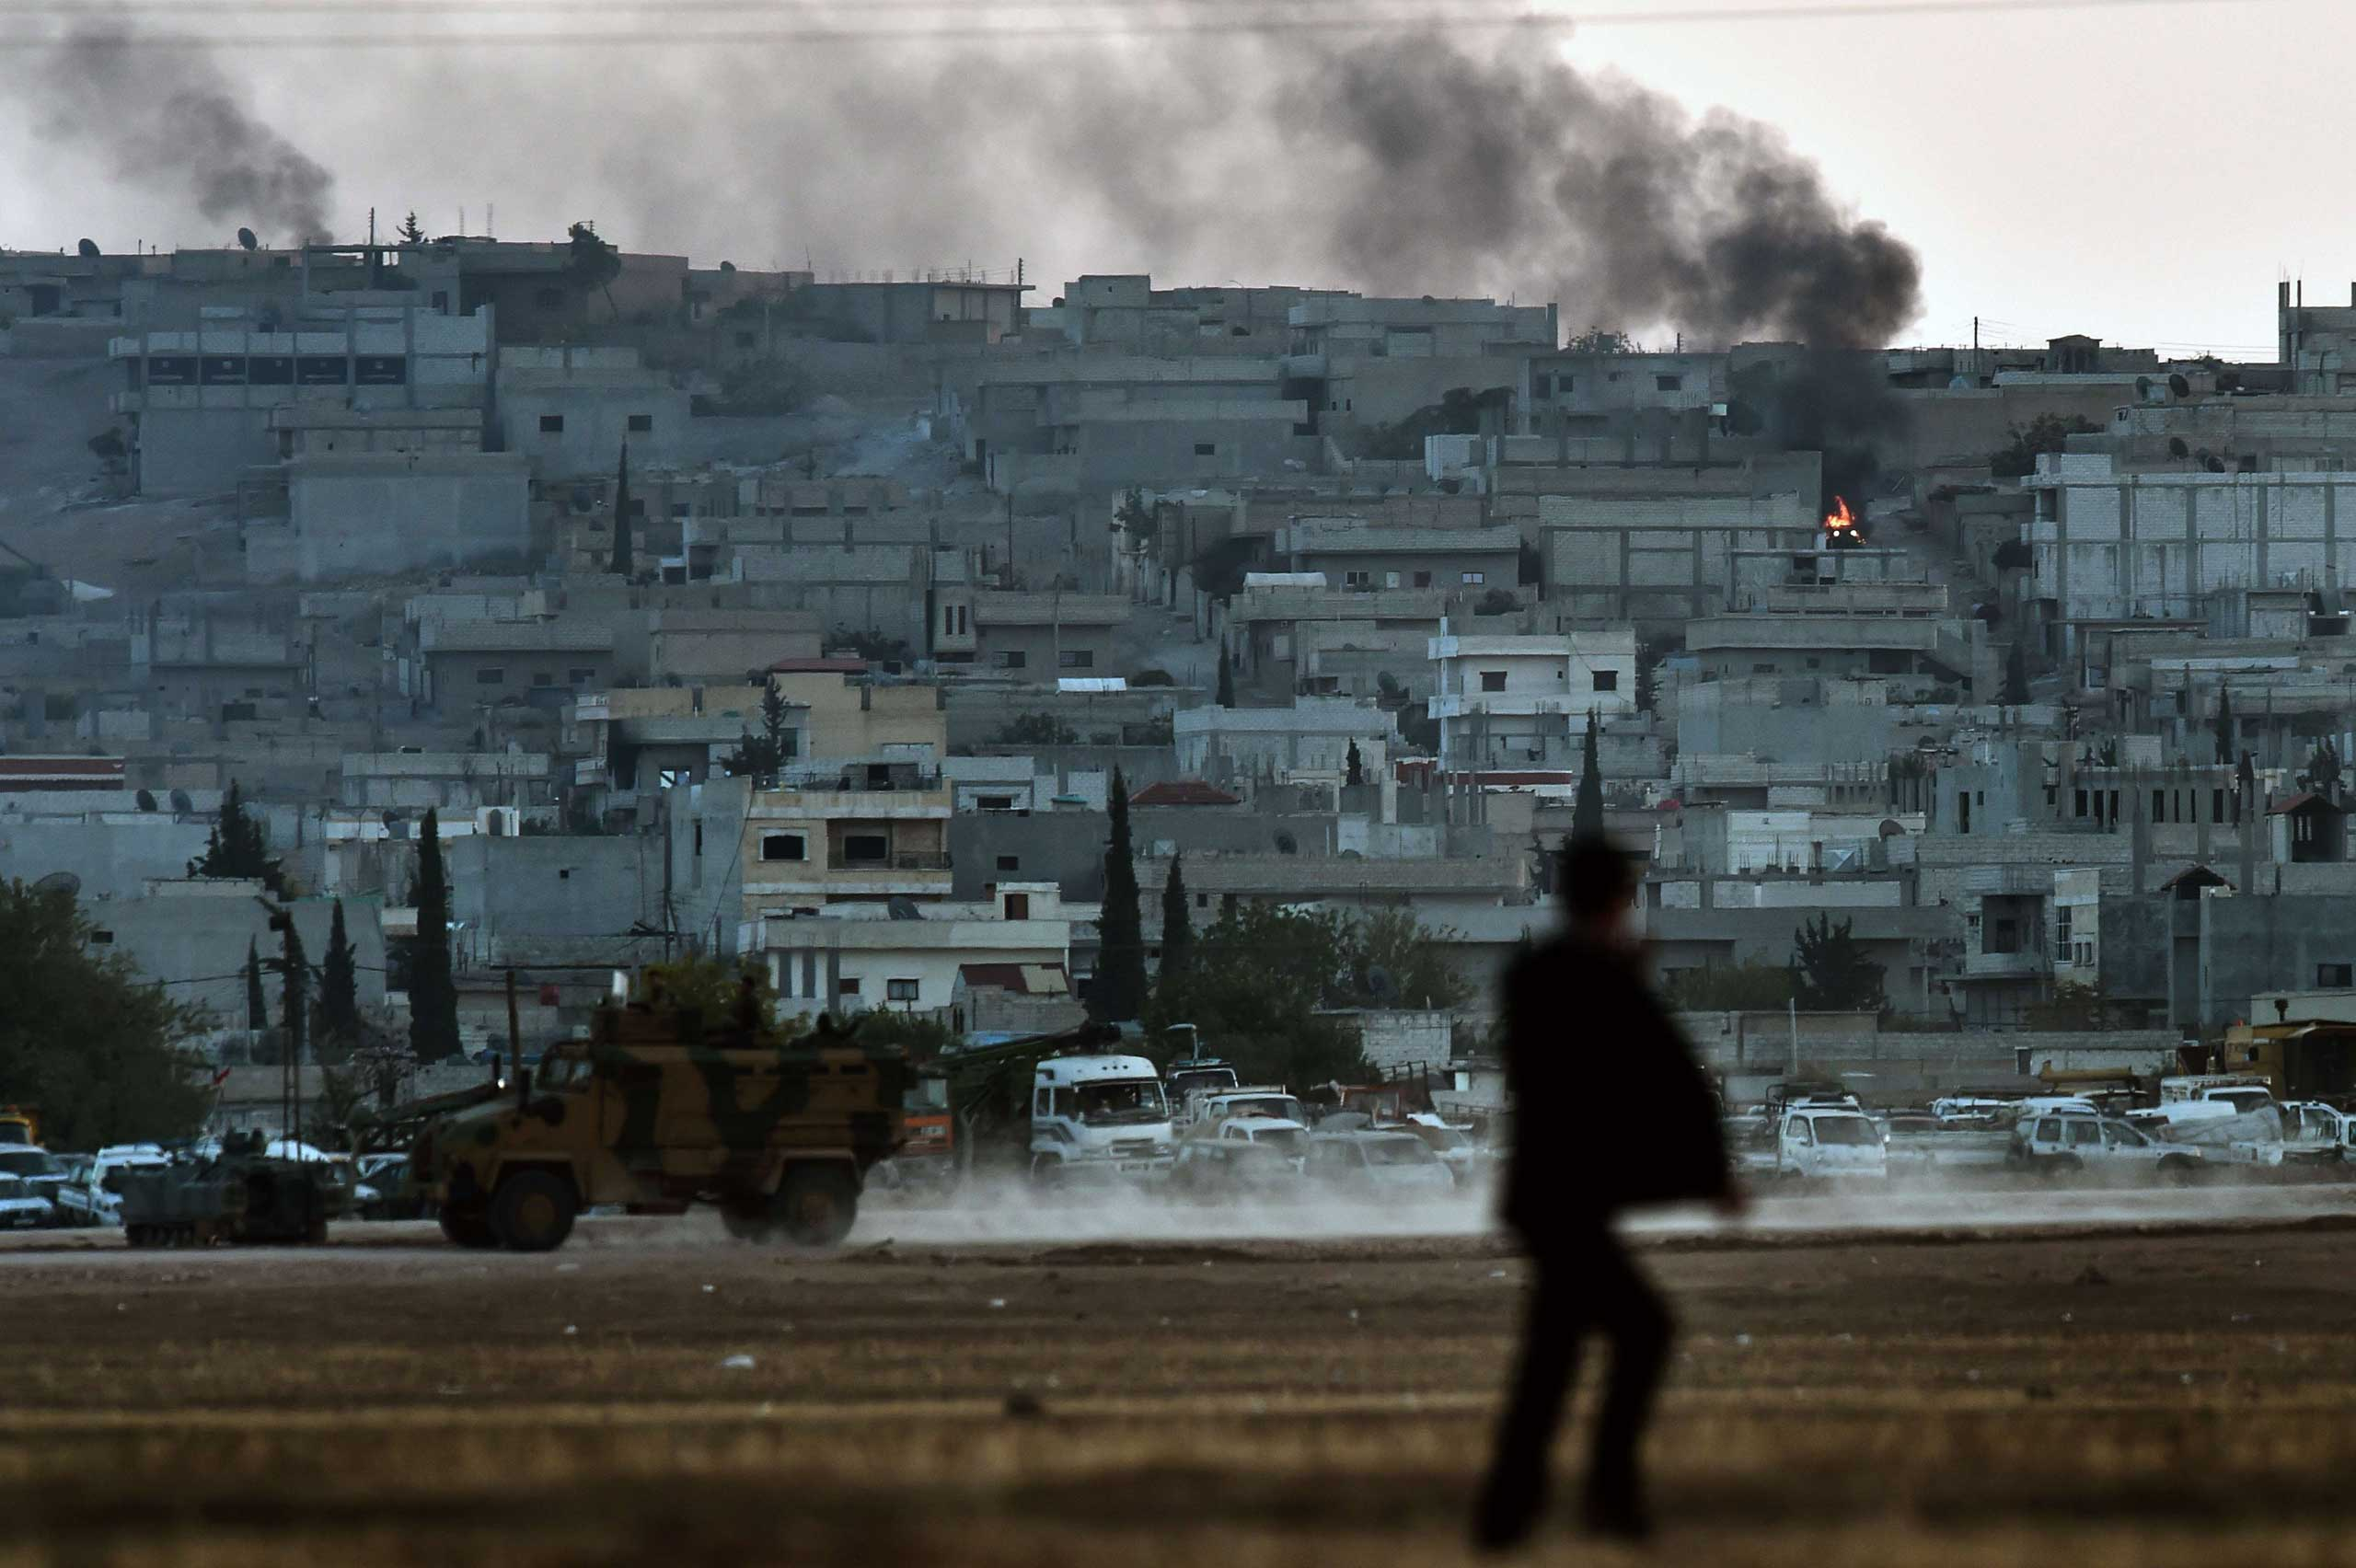 Smoke rises from the city centre of the Syrian town of Ain al-Arab, known as Kobani by the Kurds, as seen from the Turkish-Syrian border during heavy fighting, in the southeastern town of Suruc, Sanliurfa province, Turkey, on Oct. 7, 2014.